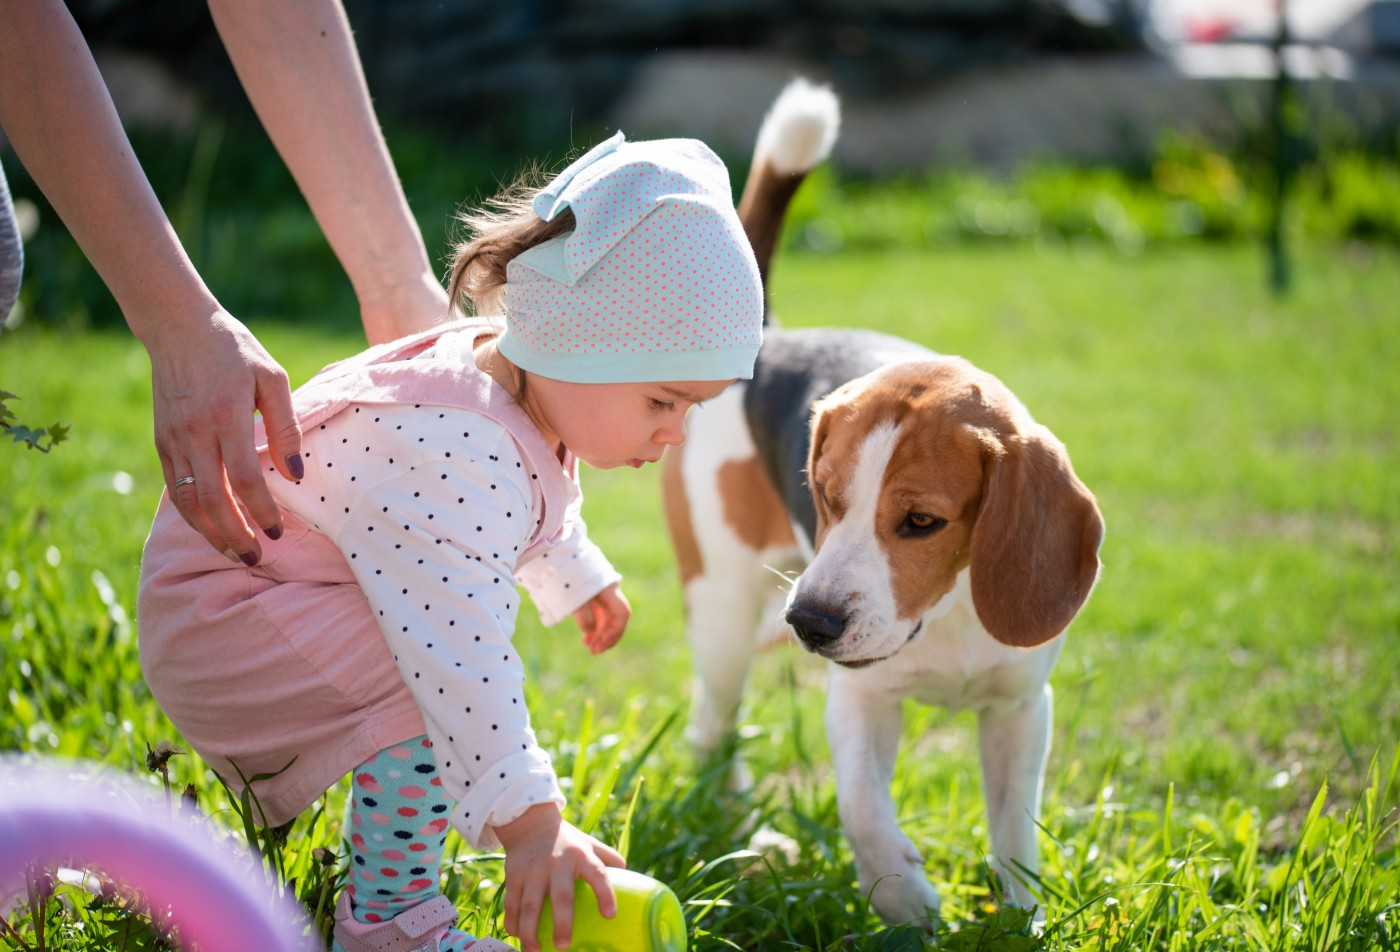 Little girl child playing in sunny day in backyard with her best friend beagle dog